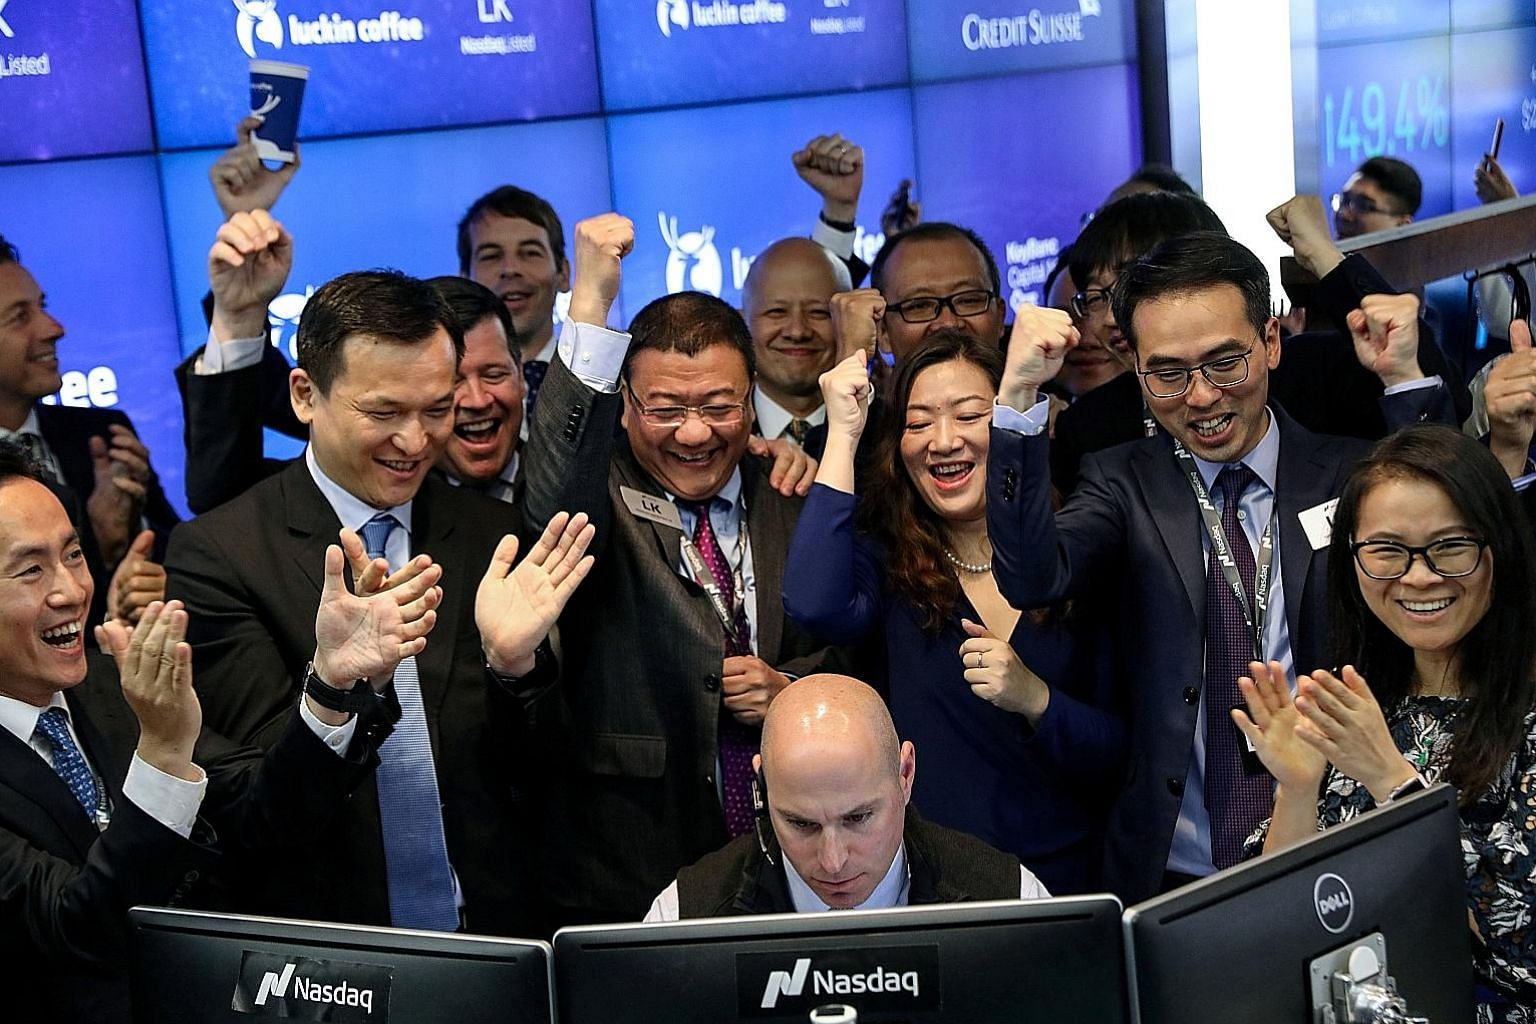 Mr David Li (second from left), CEO of Centurium Capital, celebrating the first trade of Luckin Coffee's stock with the start-up's executives during its Nasdaq debut in New York in May. Centurium was an early backer of the Chinese challenger to Starb